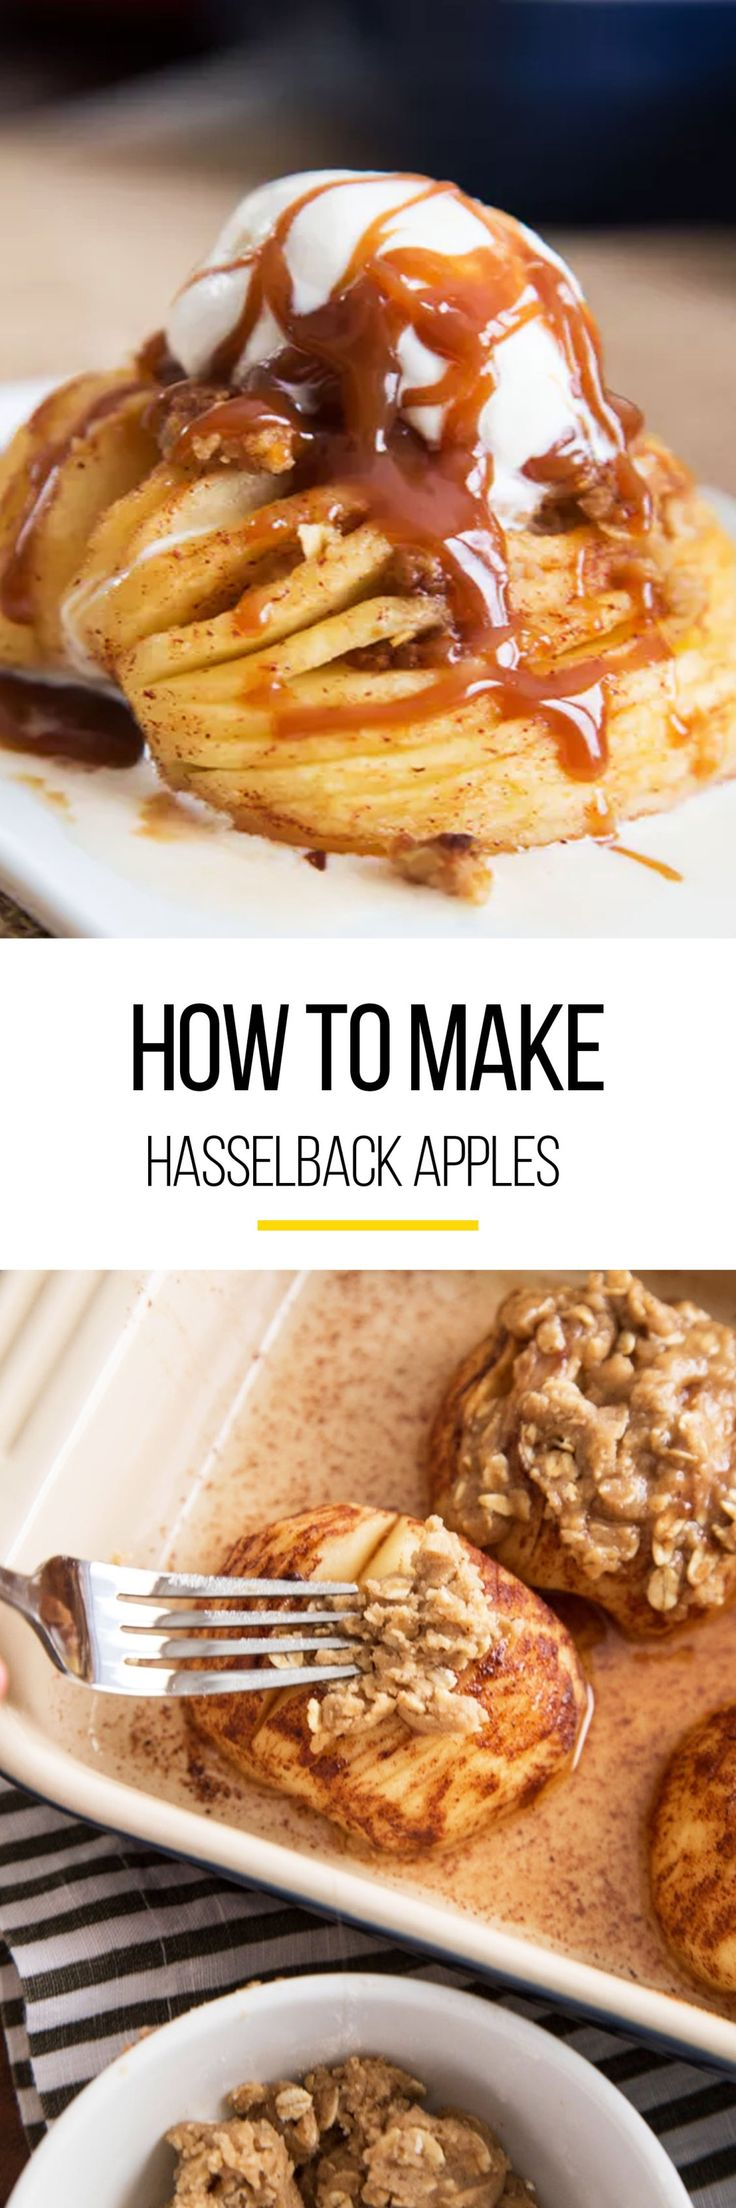 Use those apples from your apple-picking trip to make this simple apple recipe. We're showing you how to make hasselback apples. This sweet apple dessert screams fall if your in the mood for a treat. All you need for this healthy(ish) recipe is firm apples, unsalted butter, brown sugar, cinnamon, flour, rolled oats salt, cooking spray and top it all off with ice cream.